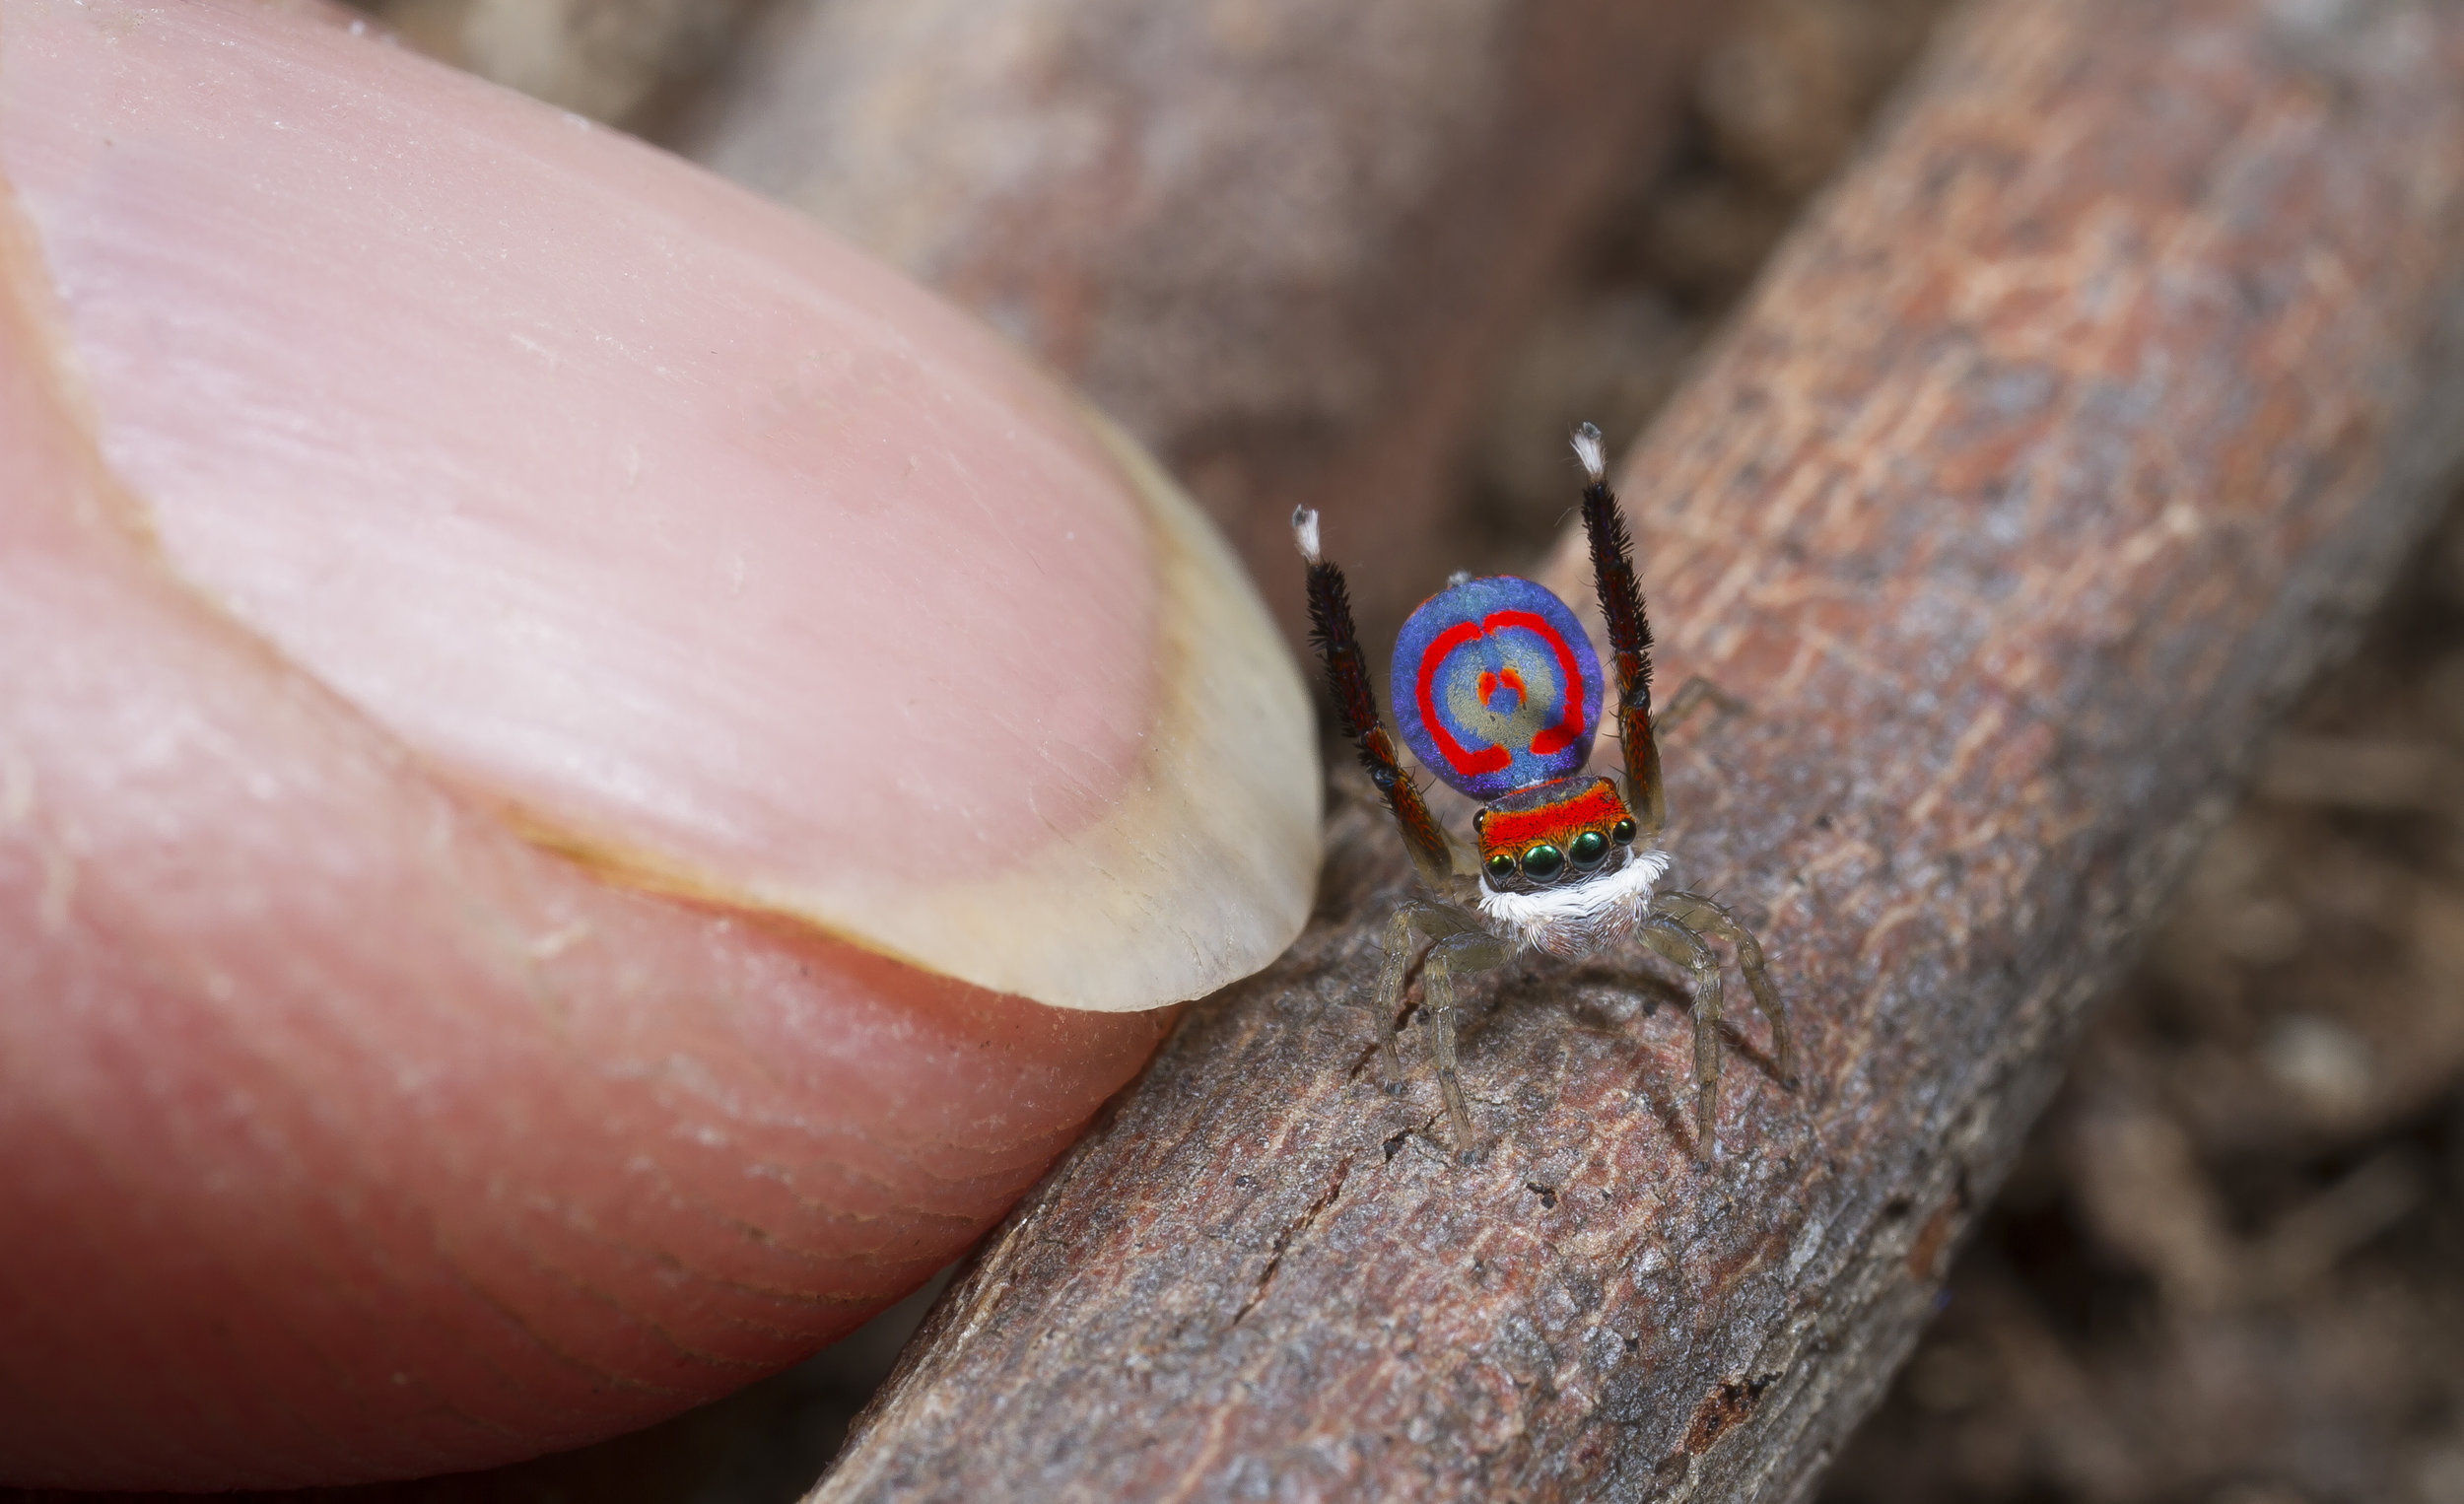 Adult male of Maratus splendens, a medium sized peacock spider, next to my index finger